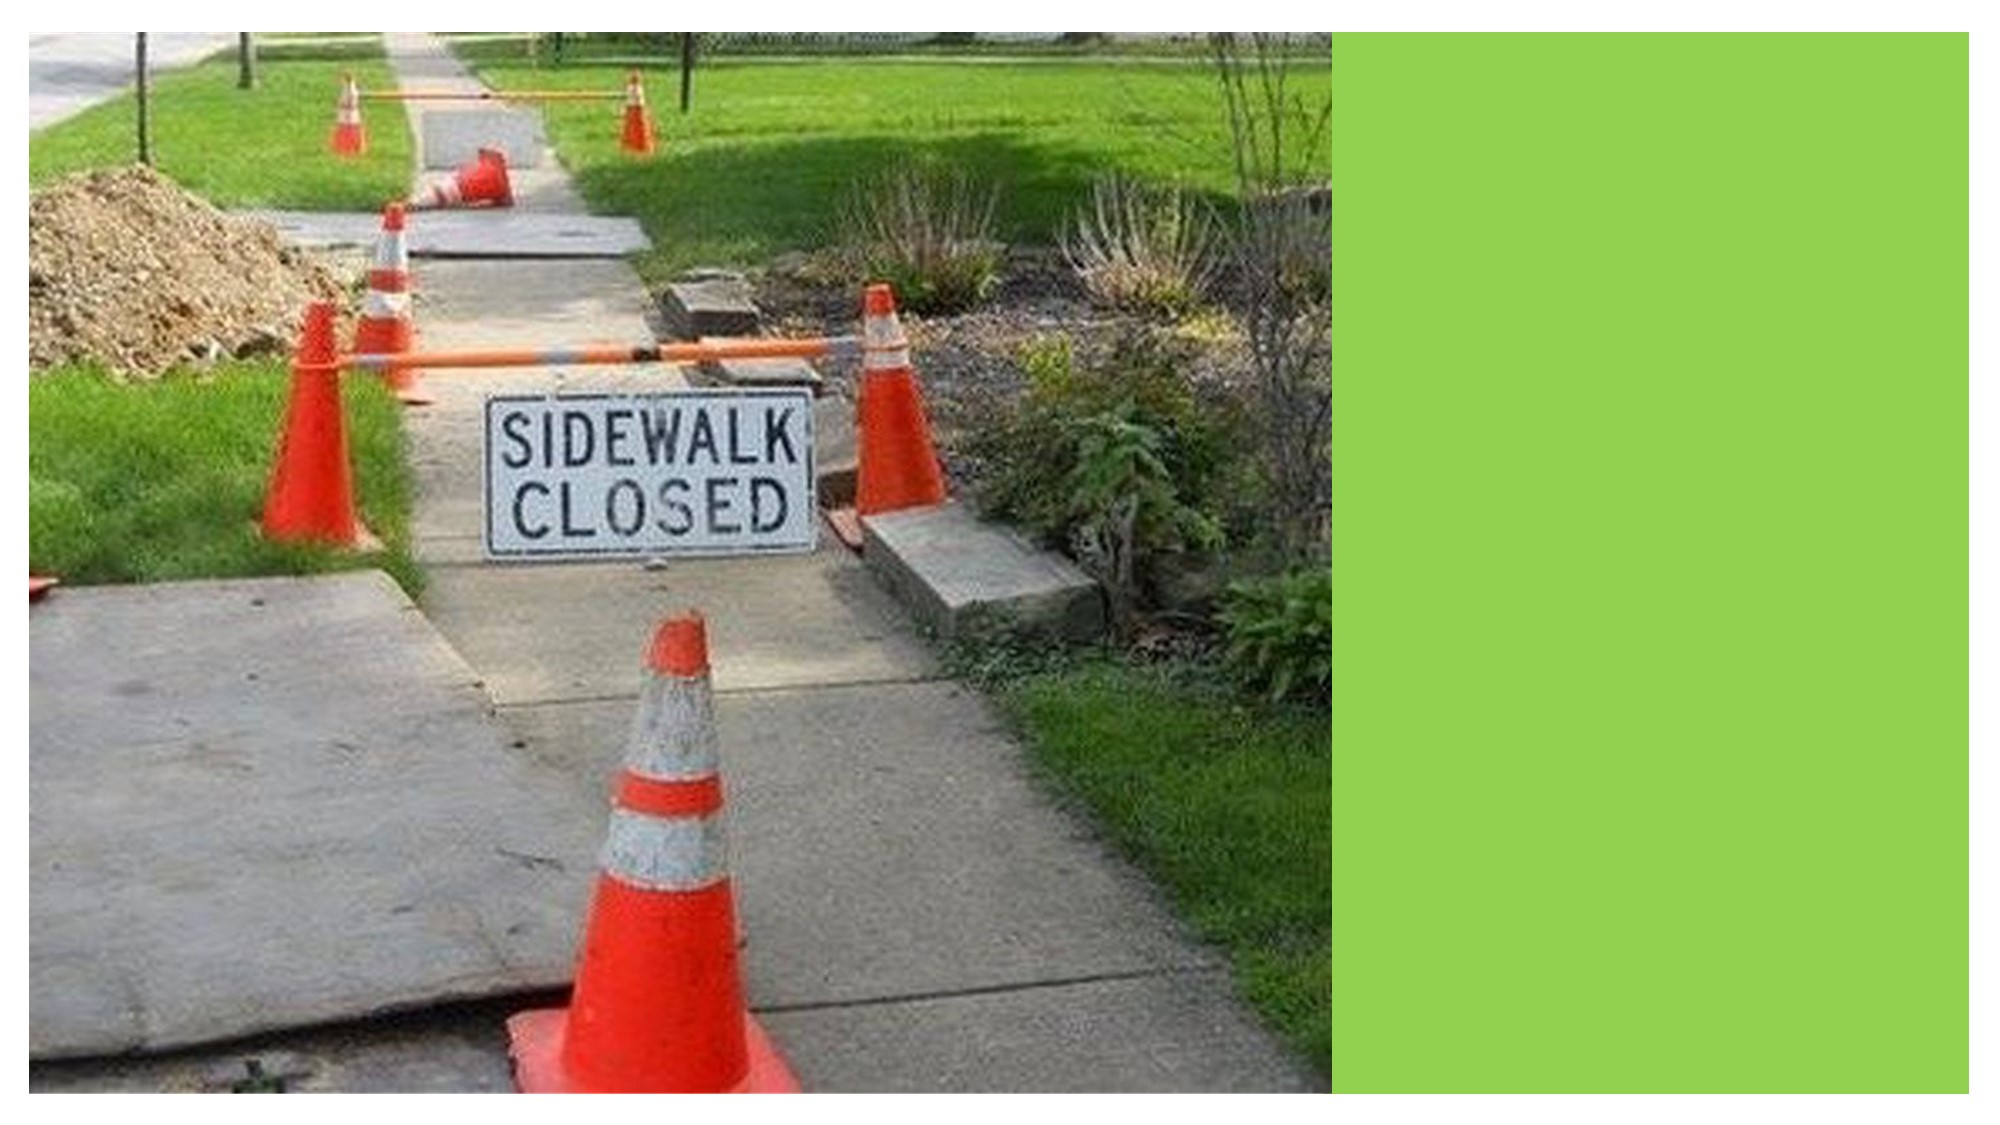 <div id=slideshow_title>Highway Avenue Sidewalk Replacement Project</div> <br>The Highway Avenue sidewalk project will be starting Wednesday, September 9th. Please be advised that access to the downtown businesses and roadway may be temporarily disrupted during construction. The construction is planned to be finished September 21st